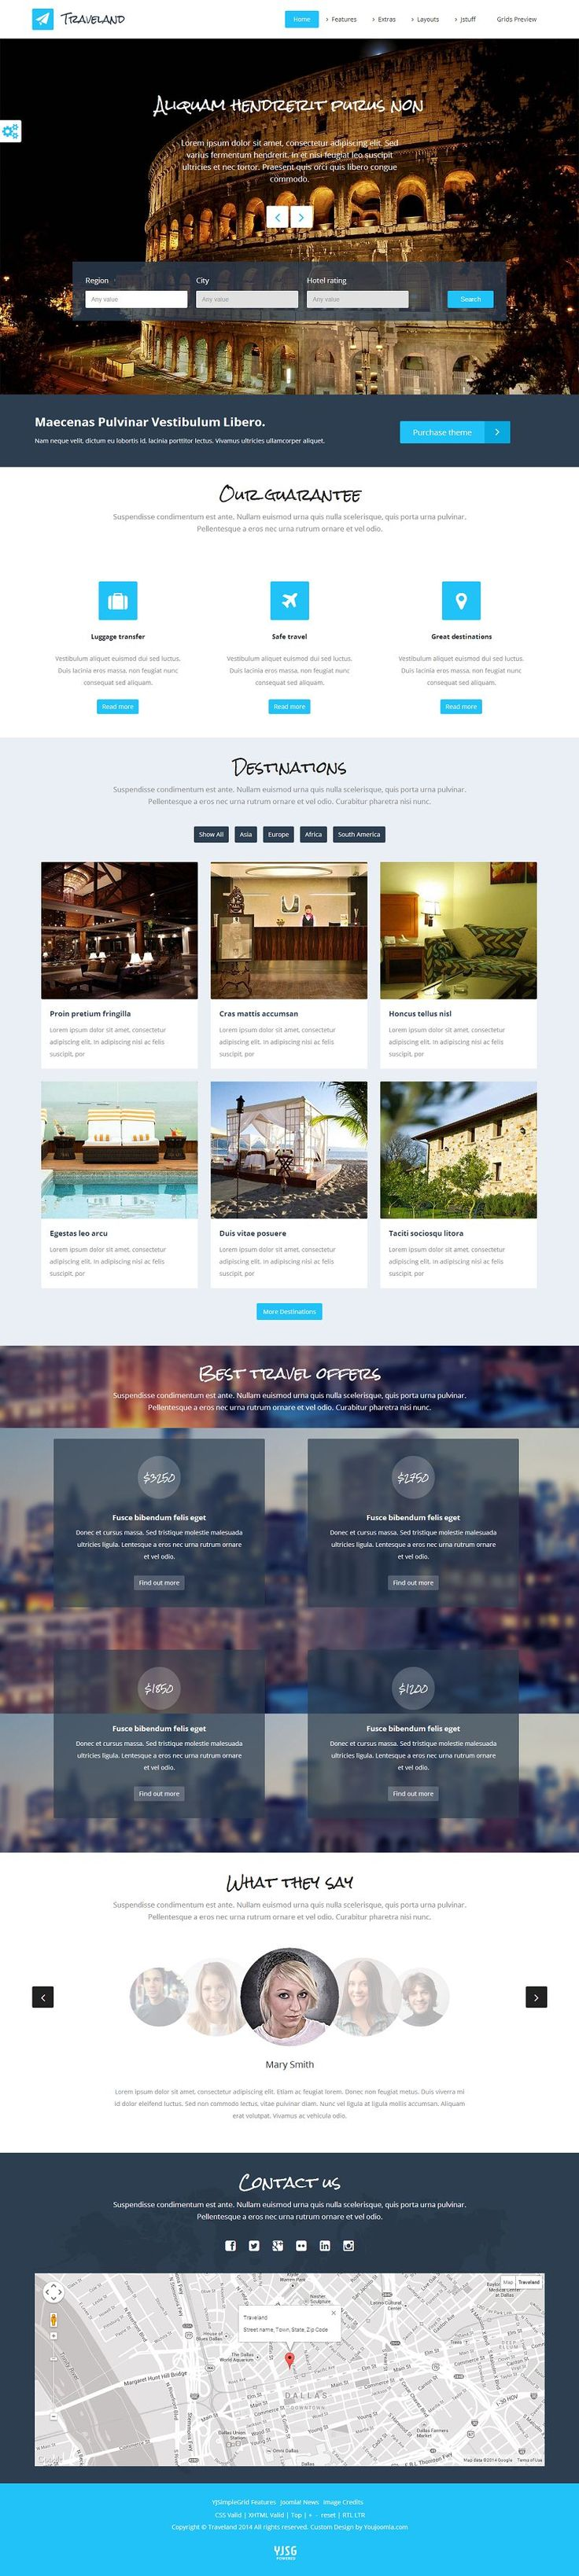 Real Estate Template%0A Traveland is an unique  flexible  flat and responsive Joomla template for  travel agencies  real estate websites or hotel presentation